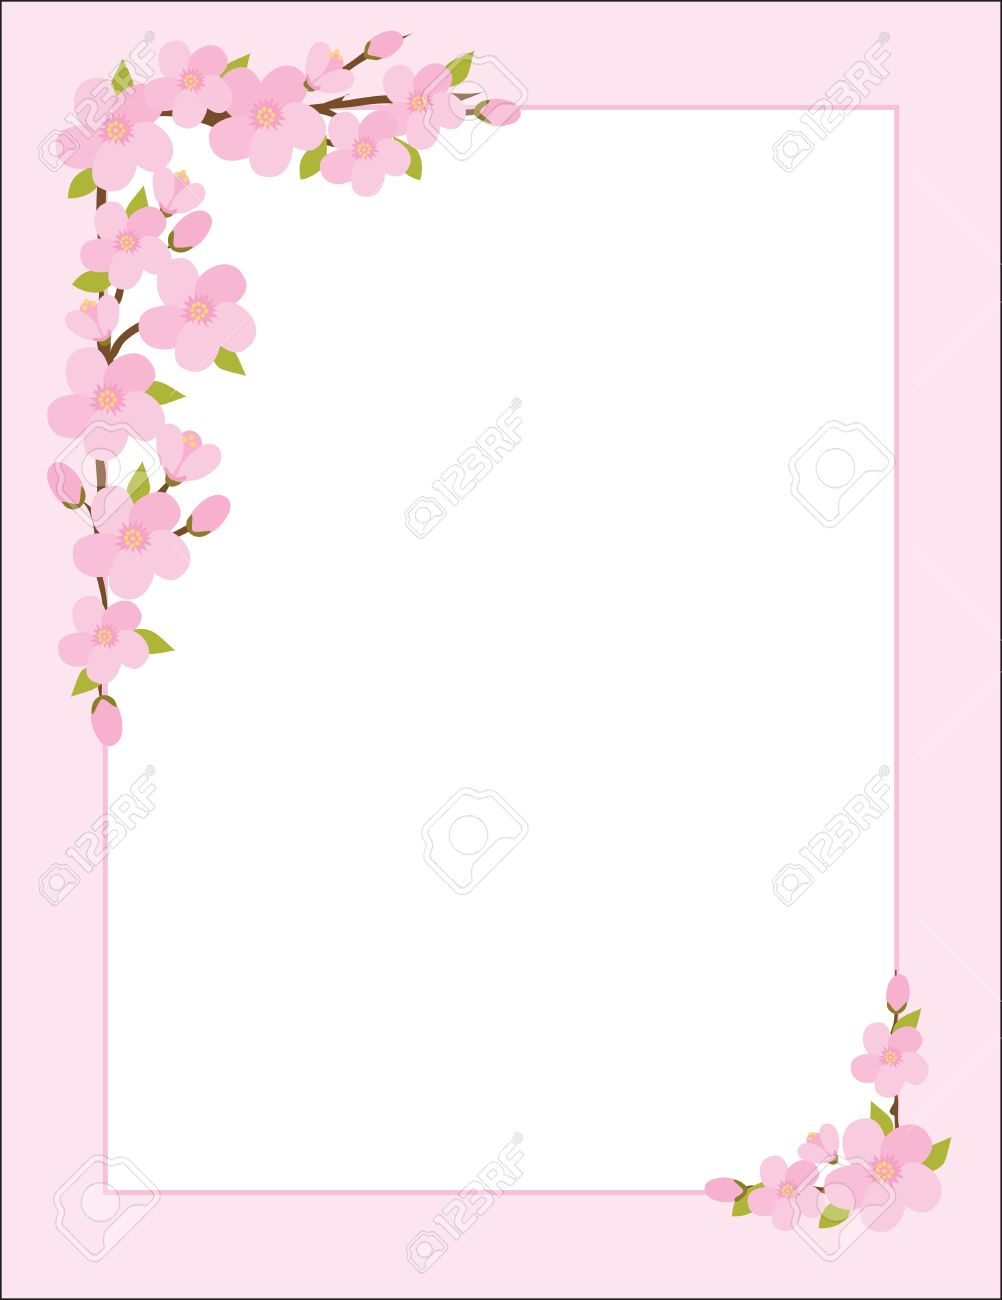 A border, frame or background featuring sprigs of apple blossoms Stock Vector - 10433181